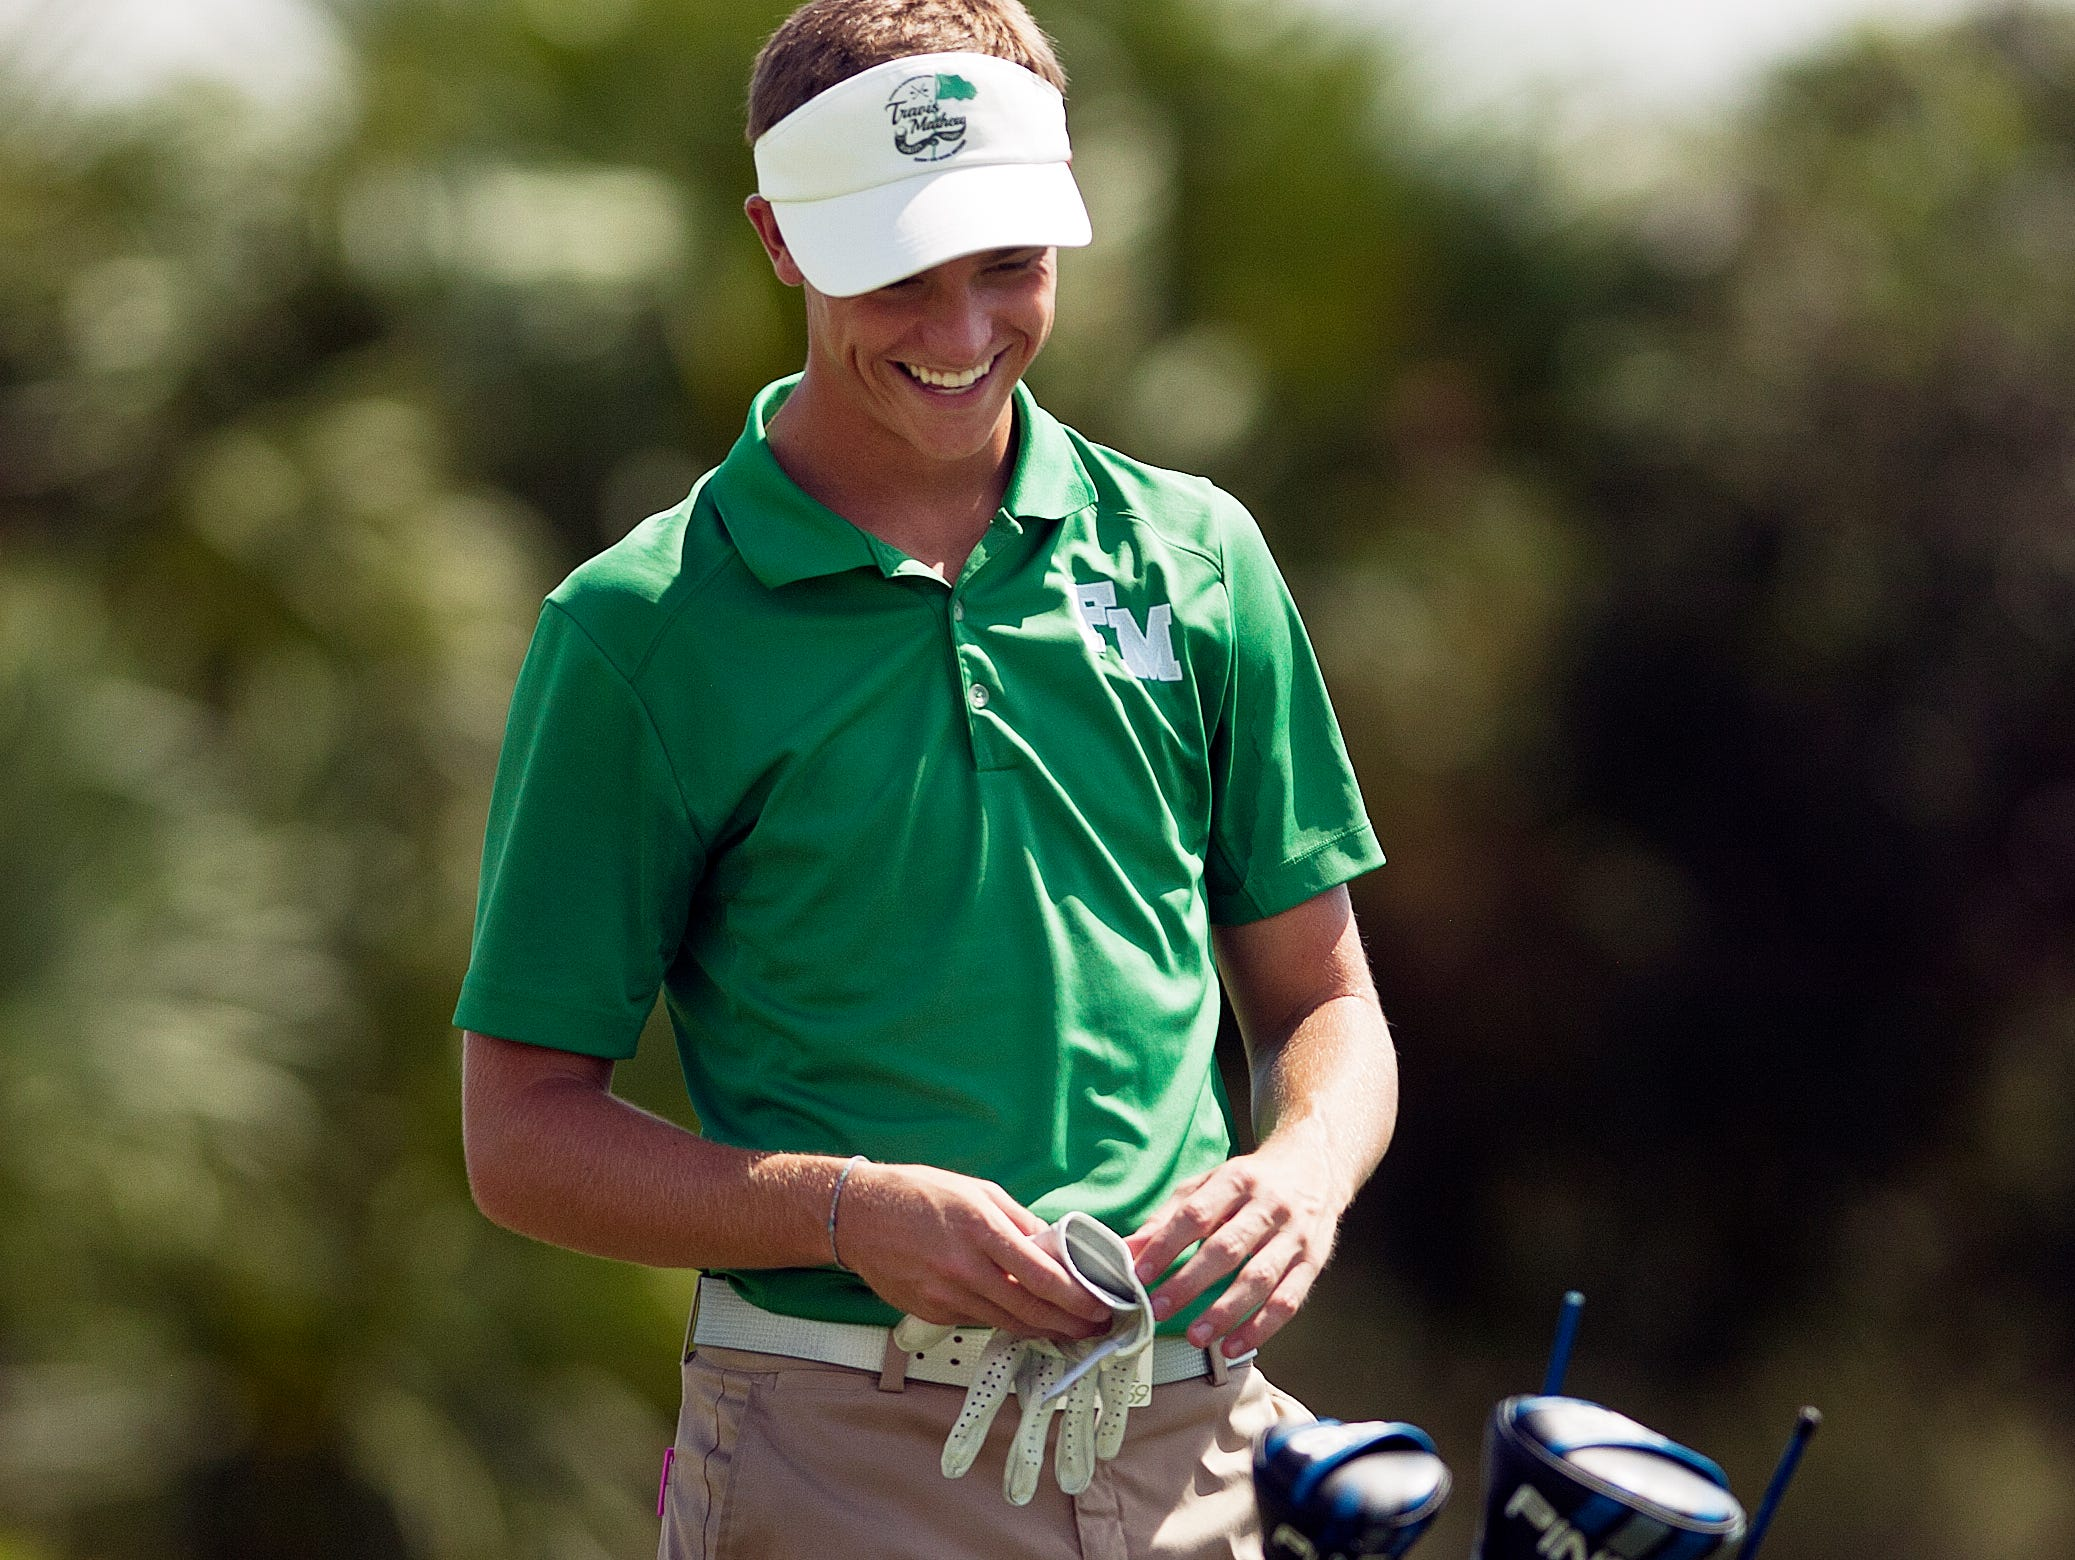 Landon Weber, of Fort Myers High School, started fast and finished with a 3-under 69 to win the District 3A-15 championship Monday (10/12/15) at River Hall Country Club in Alva.